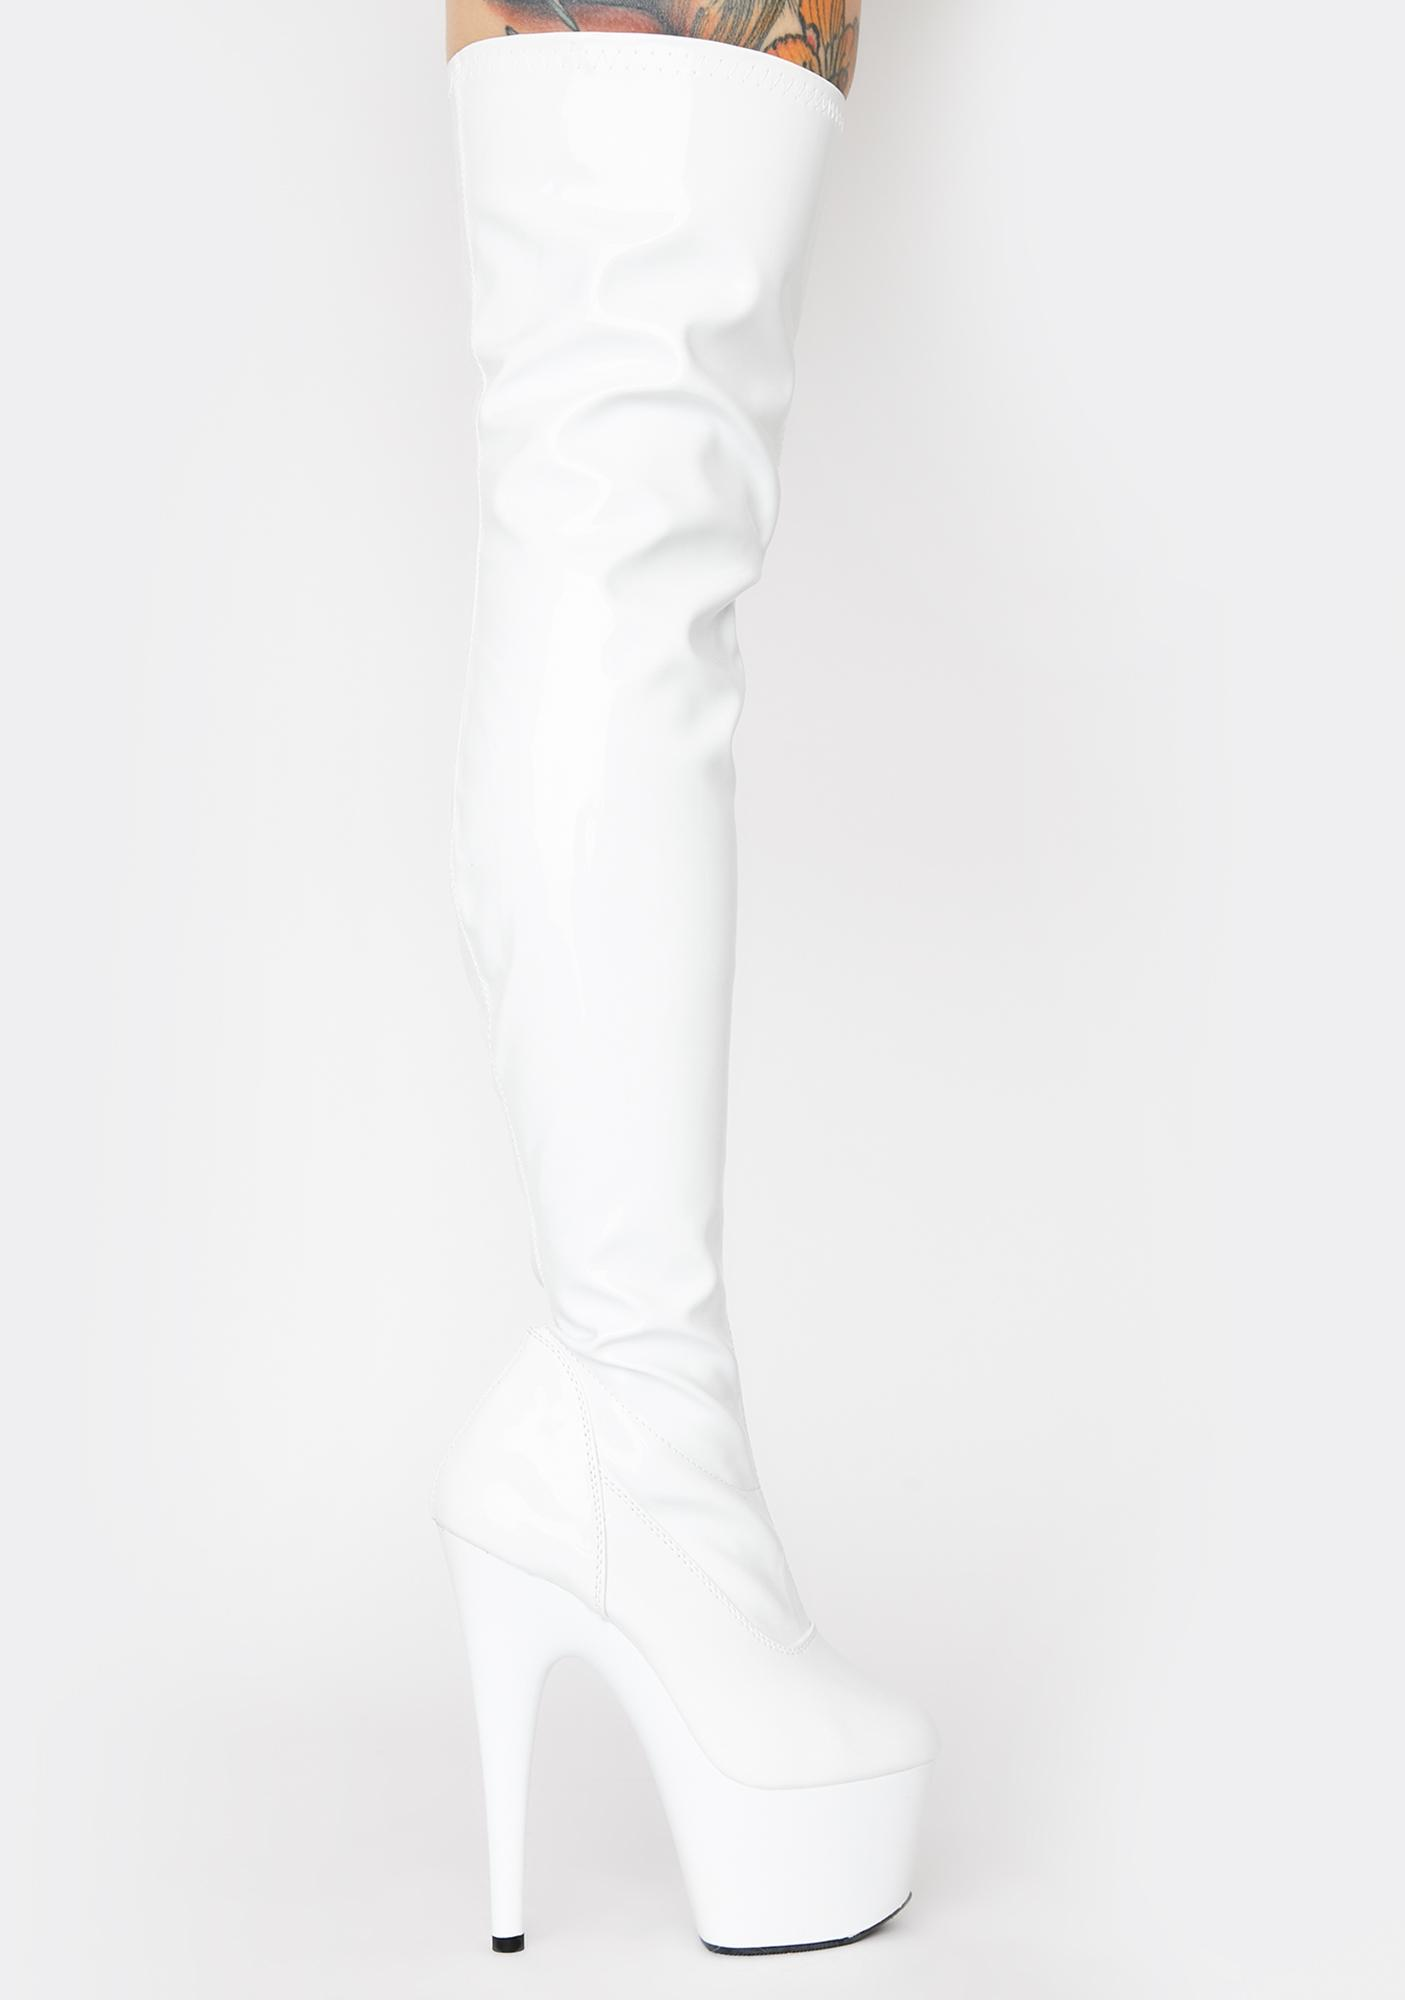 Pleaser Club Strut Thigh High Boots